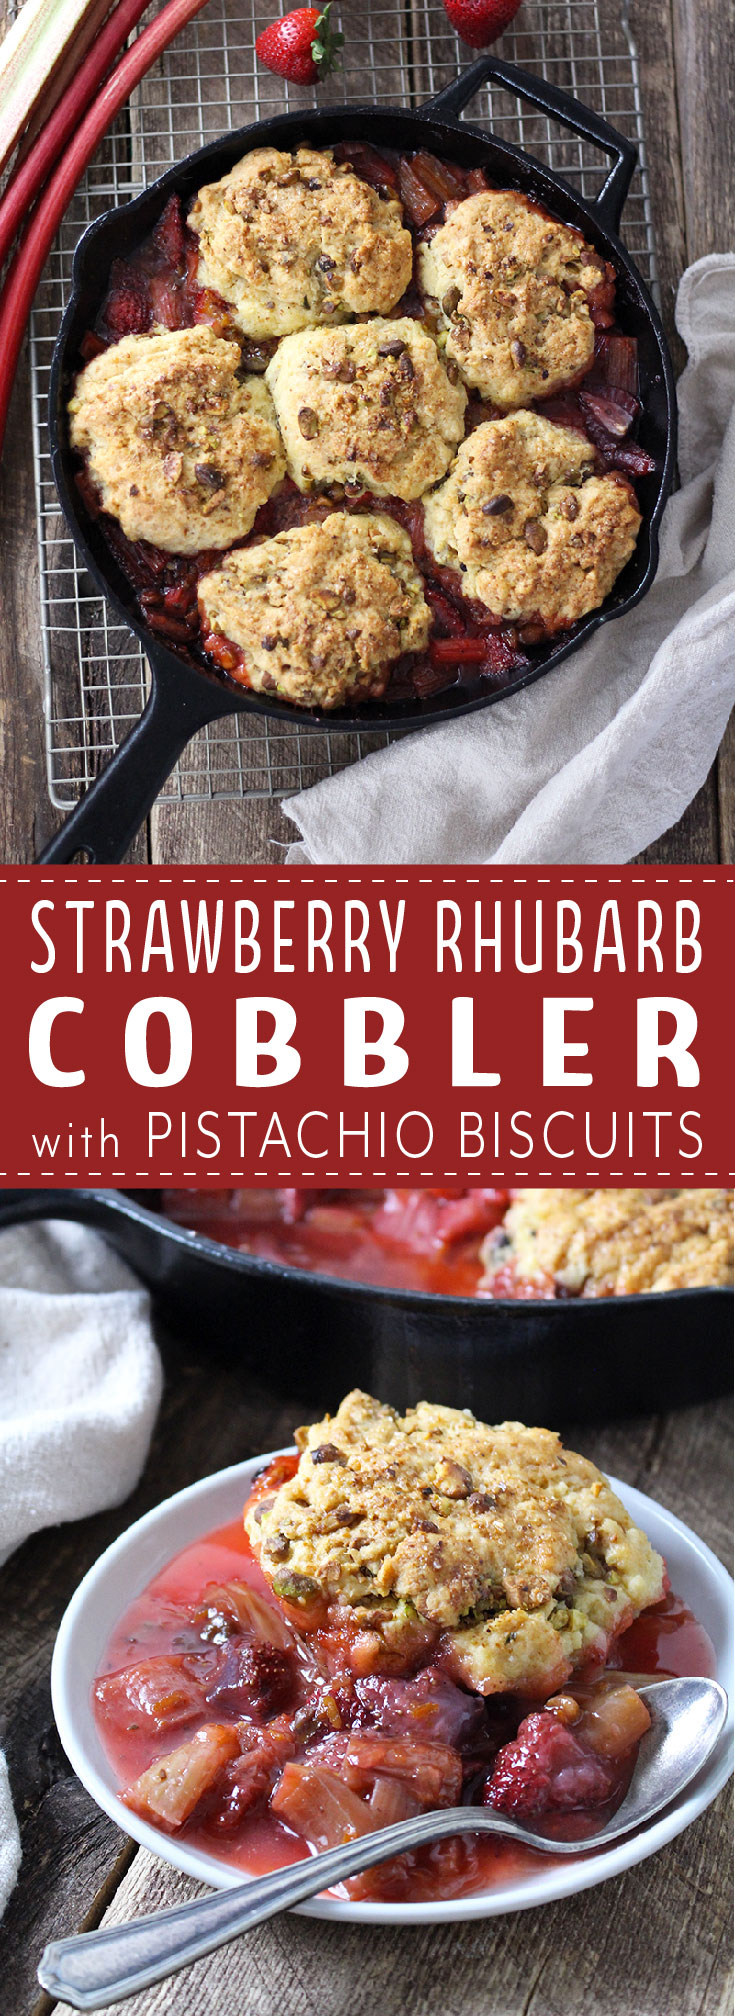 Strawberry Rhubarb Cobbler with Pistachio Biscuits